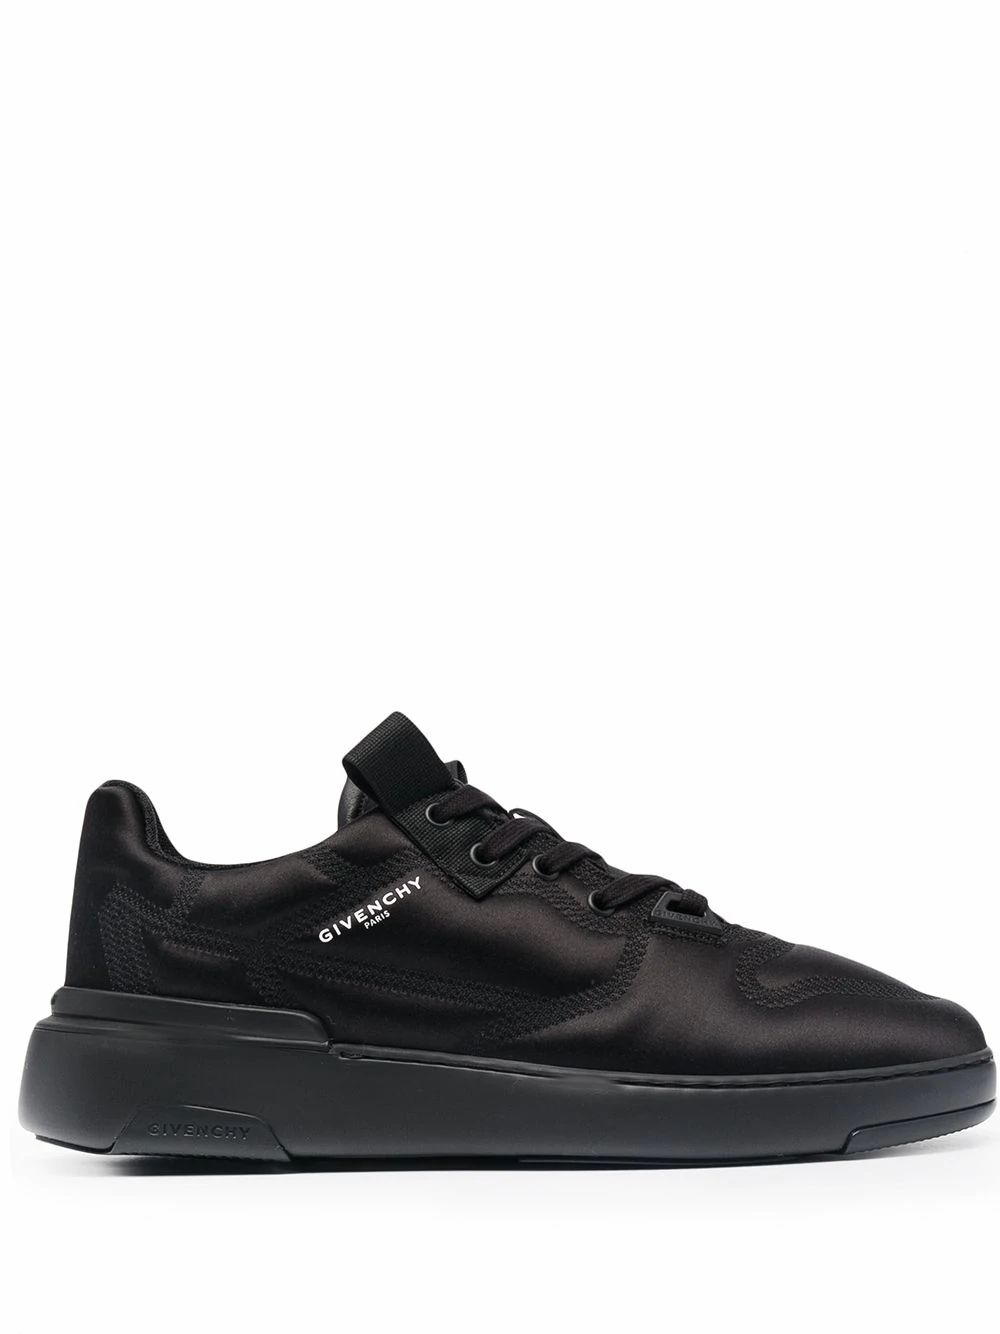 Givenchy GIVENCHY MEN'S BH004CH0SY001 BLACK VISCOSE SNEAKERS